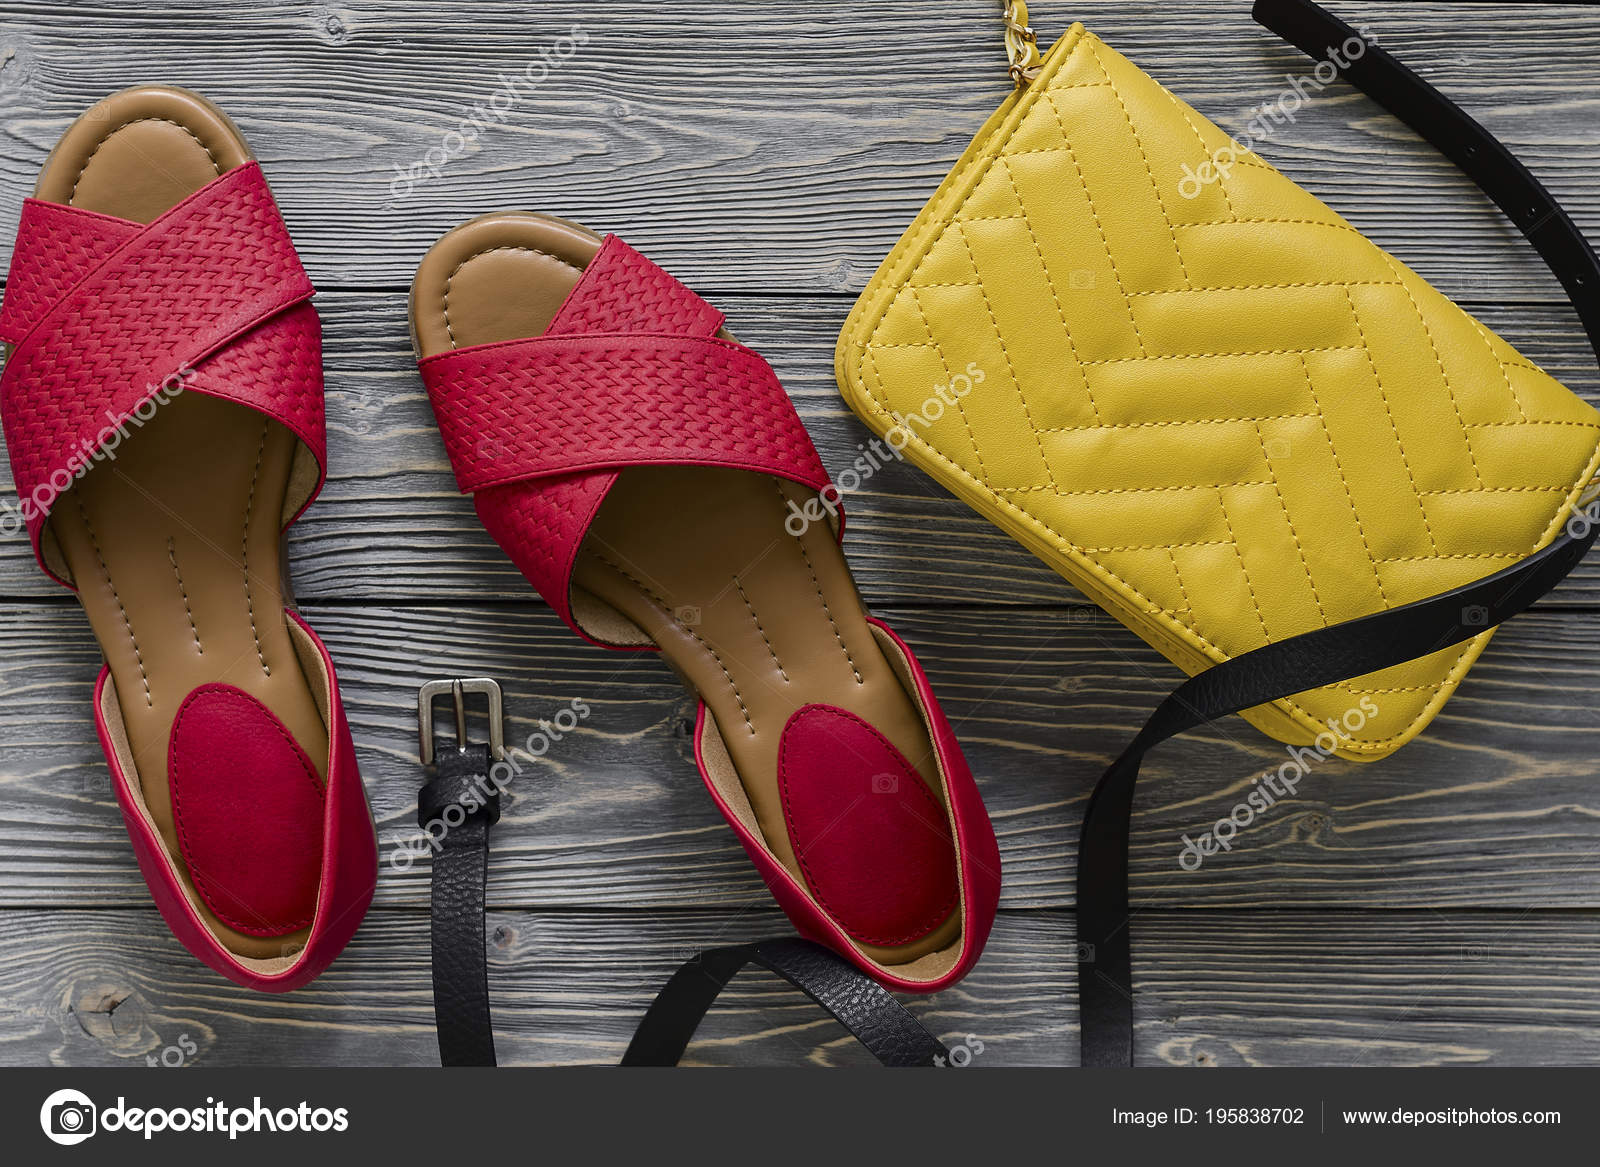 5828ed7eac72 Womens Leather Shoes Accessories Red Flat Sandals Yellow Handbag Black —  Stock Photo